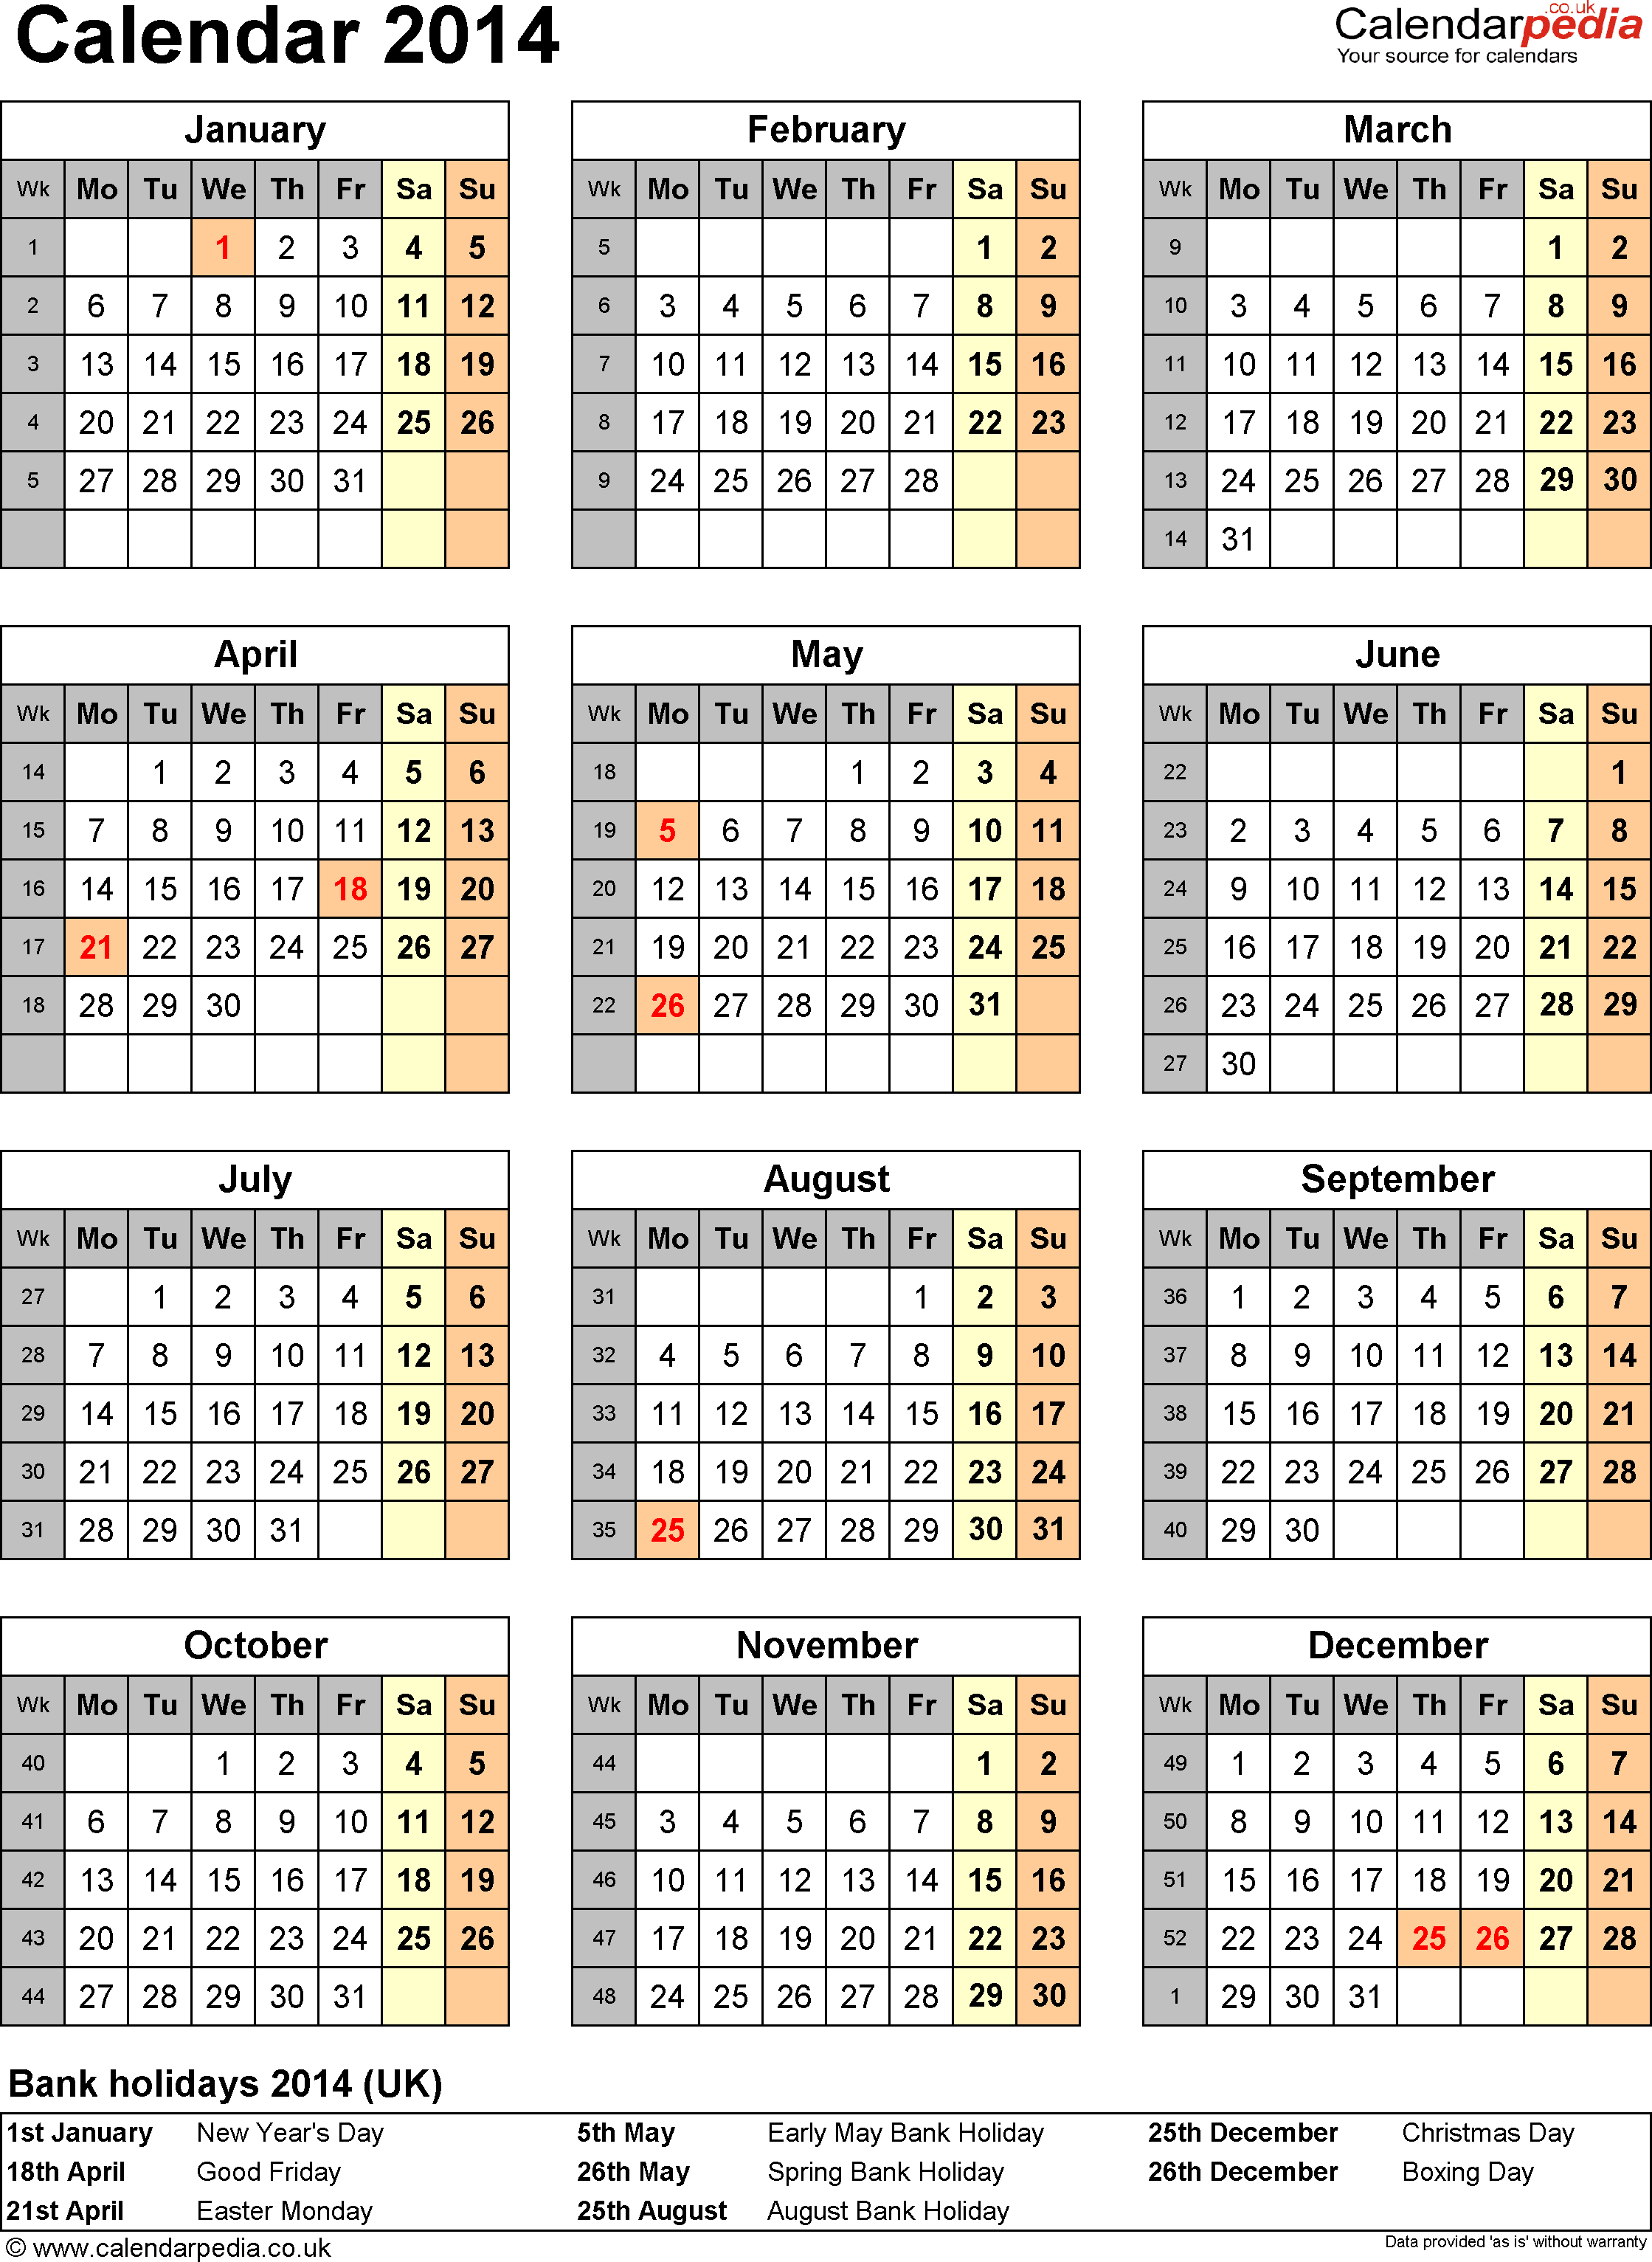 Template 10: Yearly calendar 2014 as Word template, portrait orientation, one A4 page